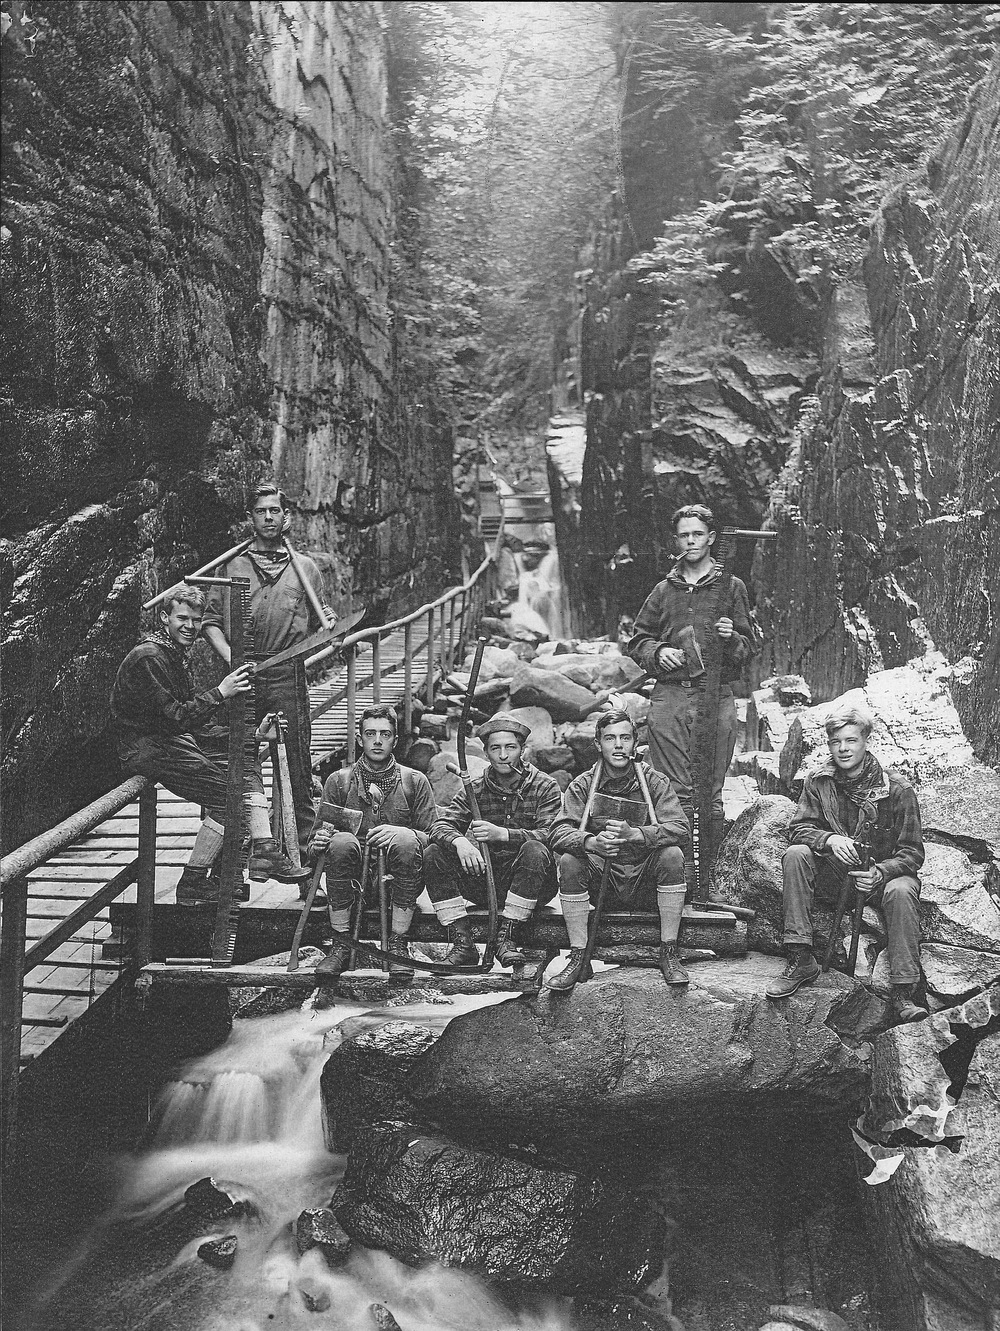 1924 Crew at the Flume Gorge  L to R:  Harland P. Sisk 1923-26(TM), Leonard B. Beach 1923-25, William J. Henrich 1924-27(TM), William L. Starr 1922-25(TM), Frederick Fish 1923-25, Harold D. Miller 1920-23(TM) & 24(TM), Dana C. Backus 1923, 24 & 26.